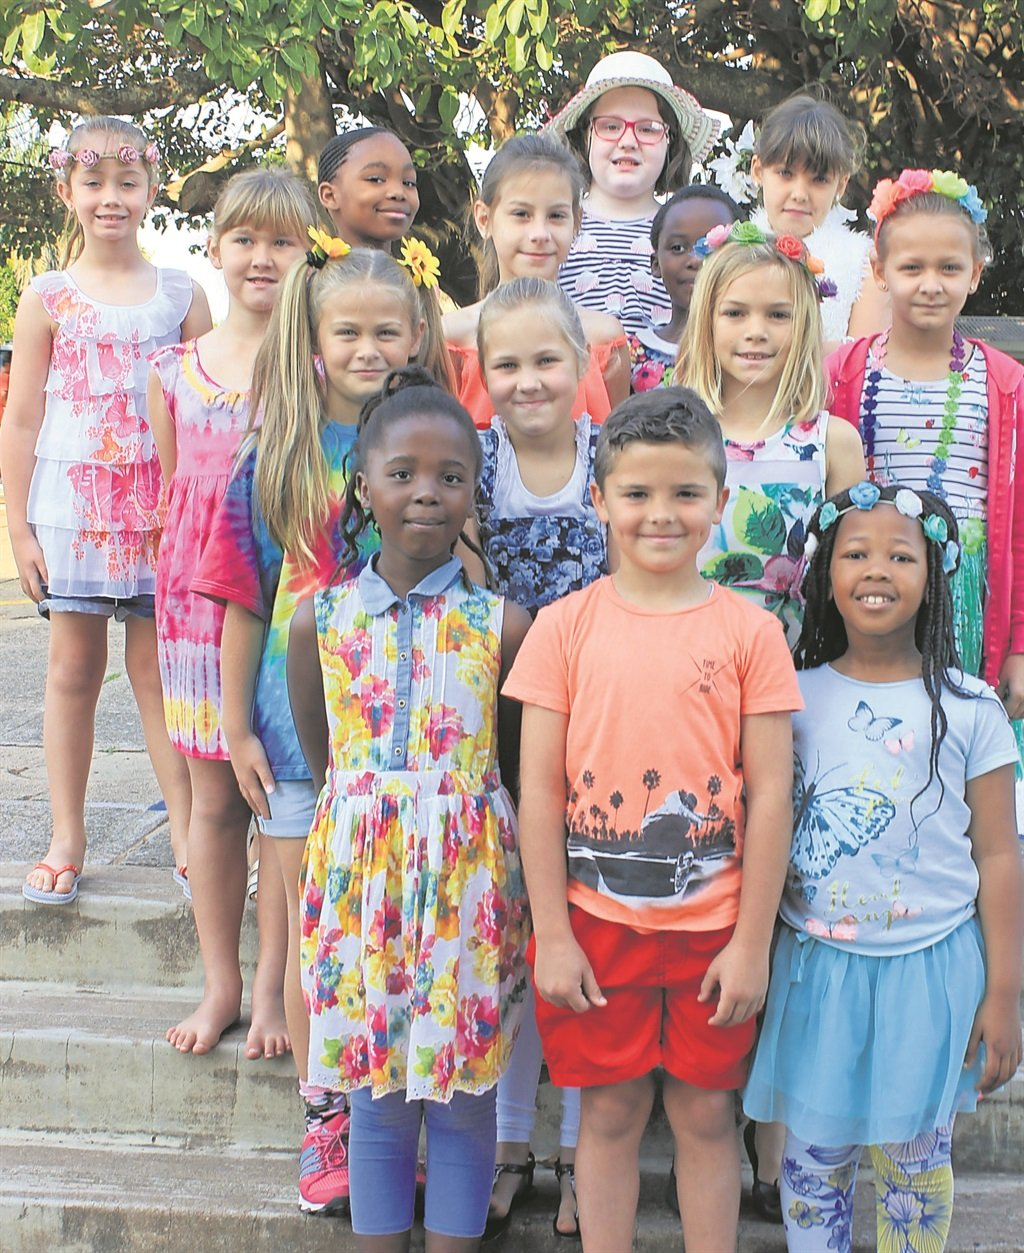 Grade two pupils all dressed up for Spring Day.PHOTOs: supplied